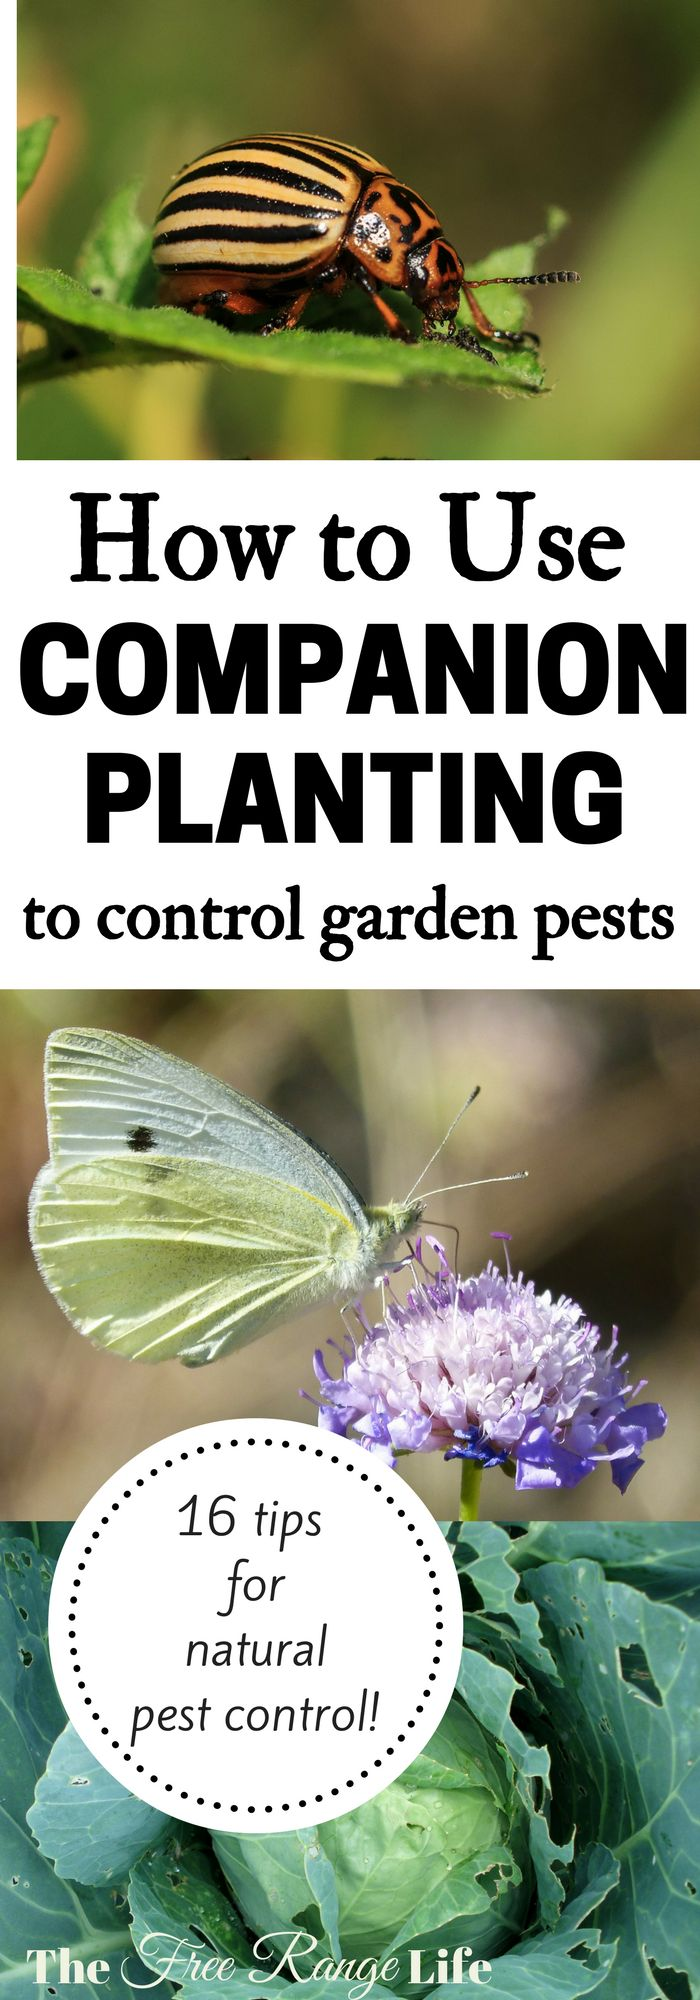 Organic Gardening Tips! Great ideas on how to use companion planting to get rid of pests naturally in the garden!